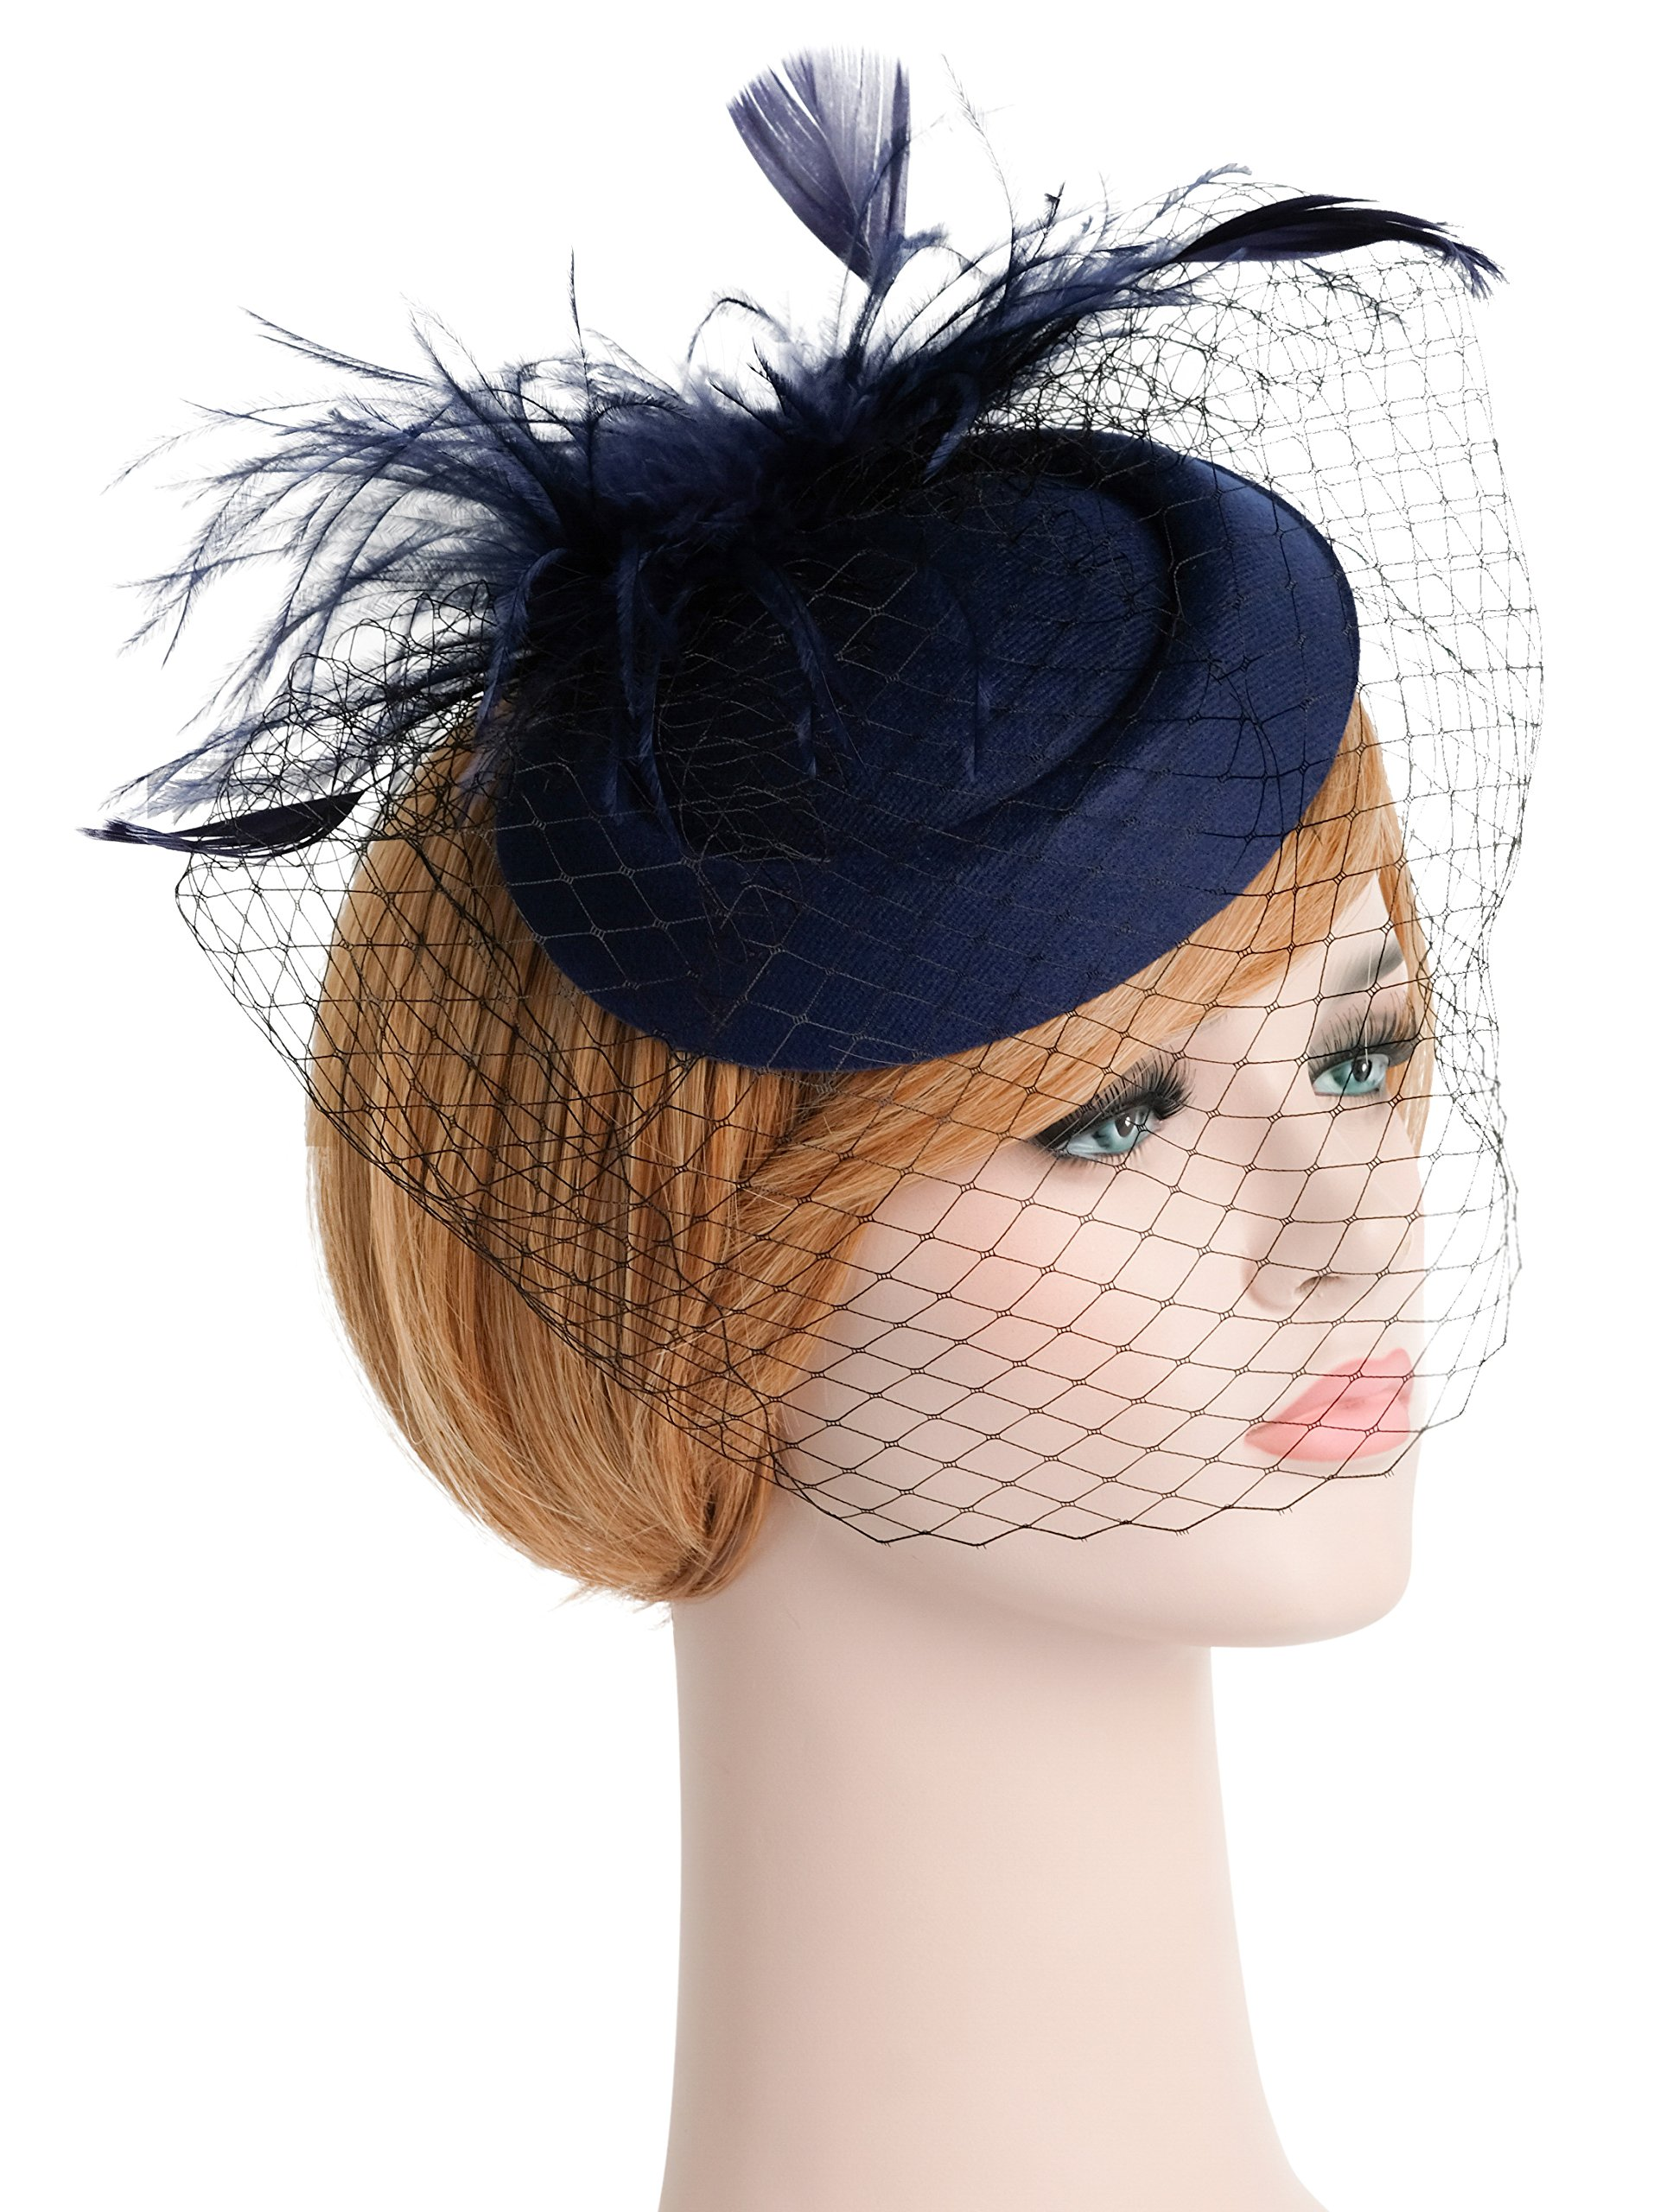 Zivyes Fascinators Hats 20s 50s Accessories Derby Hat Cocktail Tea Party Pillbox Headwear with Veil for Girls and Women